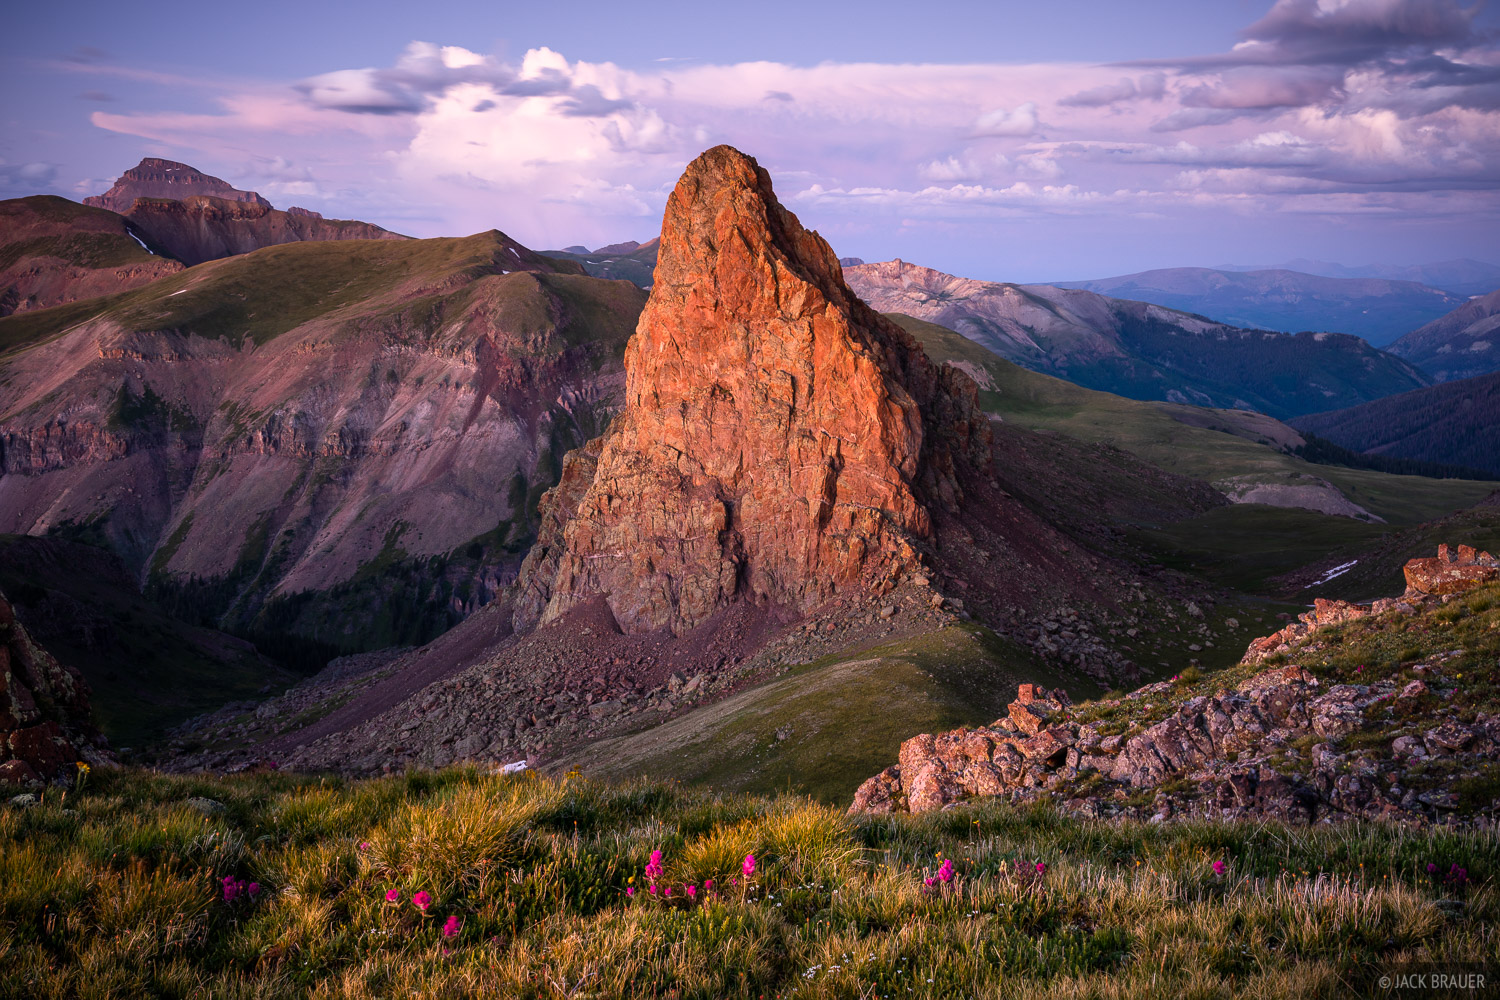 Colorado, Dragonsback, San Juan Mountains, Uncompahgre Wilderness, photo